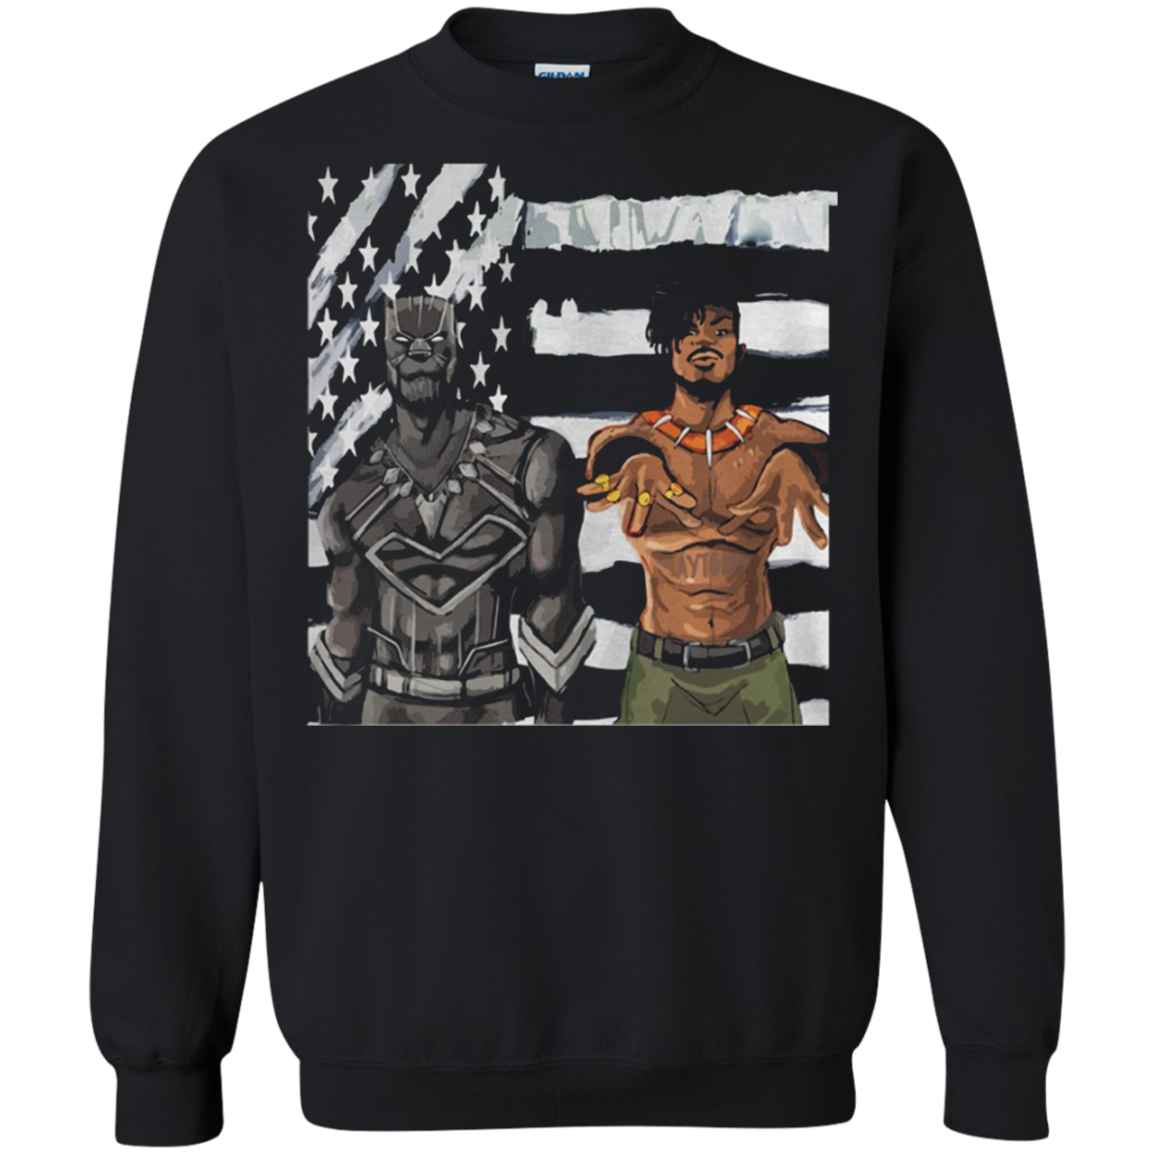 Back Panther Stankonia Wakanda Shirt Sweatshirt Men